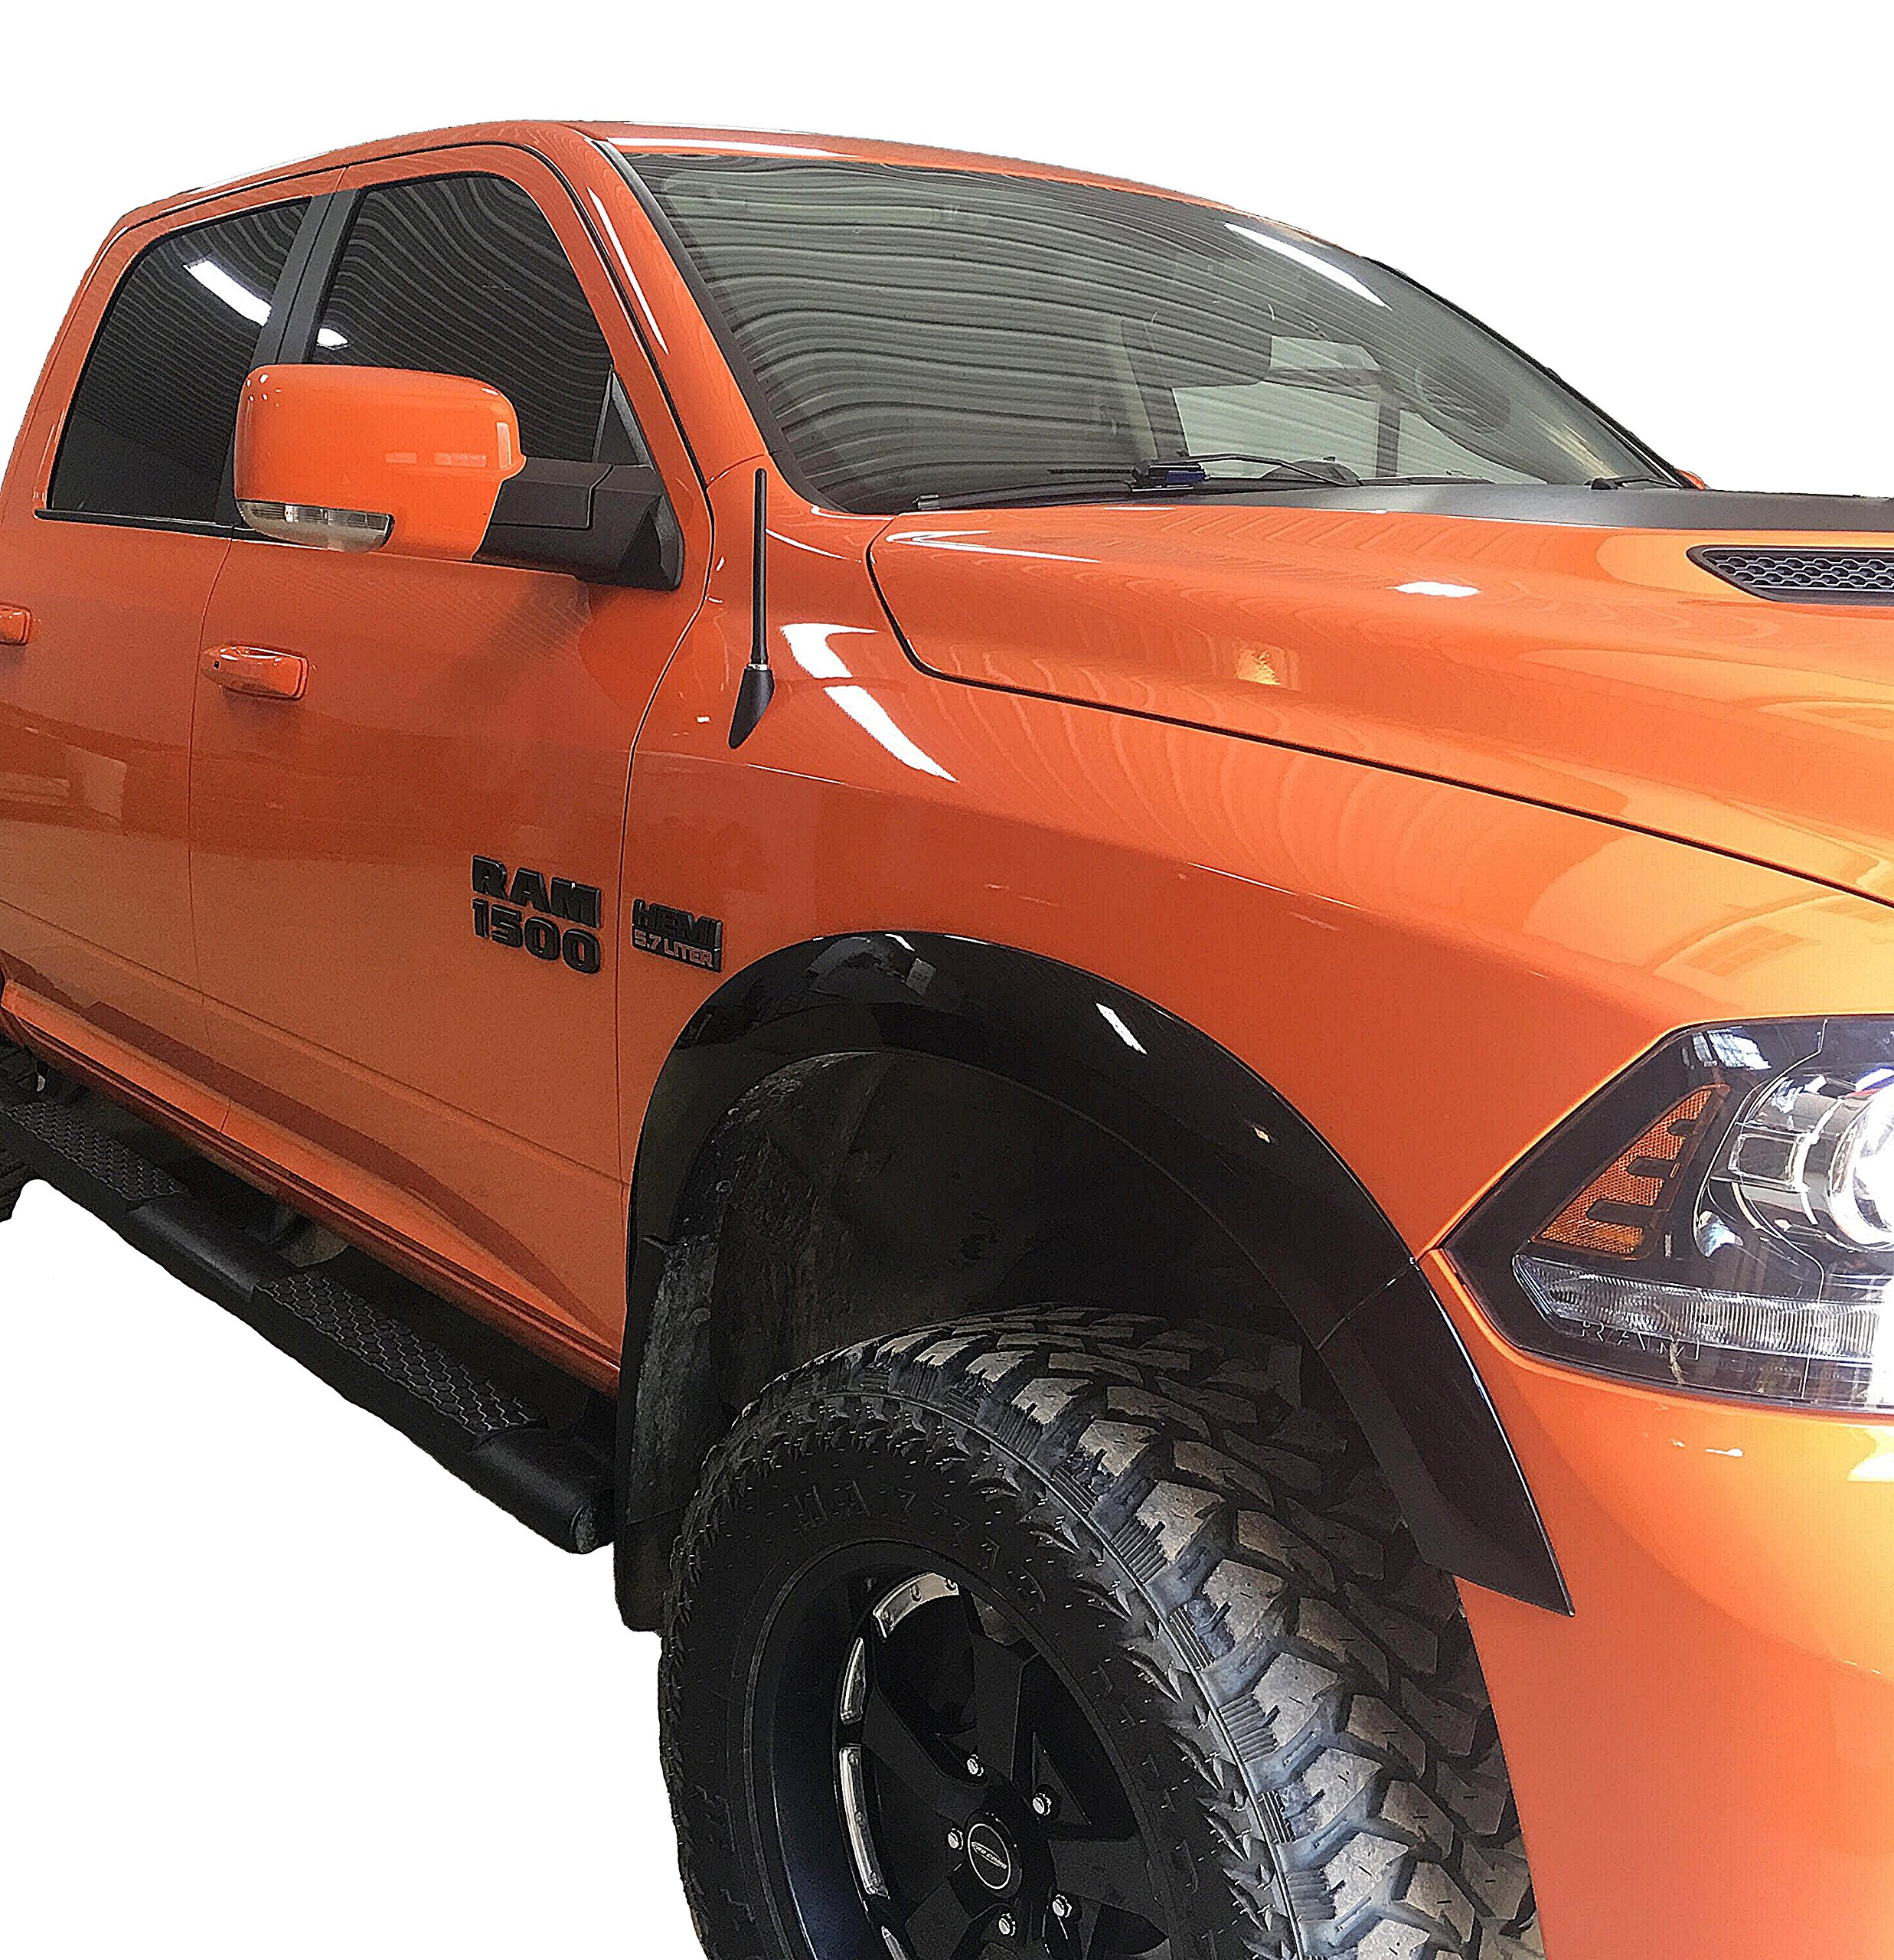 AntennaMastsRus - The Original 6 3/4 INCH Works with Dodge Ram Truck 1500 (2009-2018) - Short Rubber Antenna - Reception Guaranteed - German Engineered - Internal Copper Coil by AntennaMastsRus